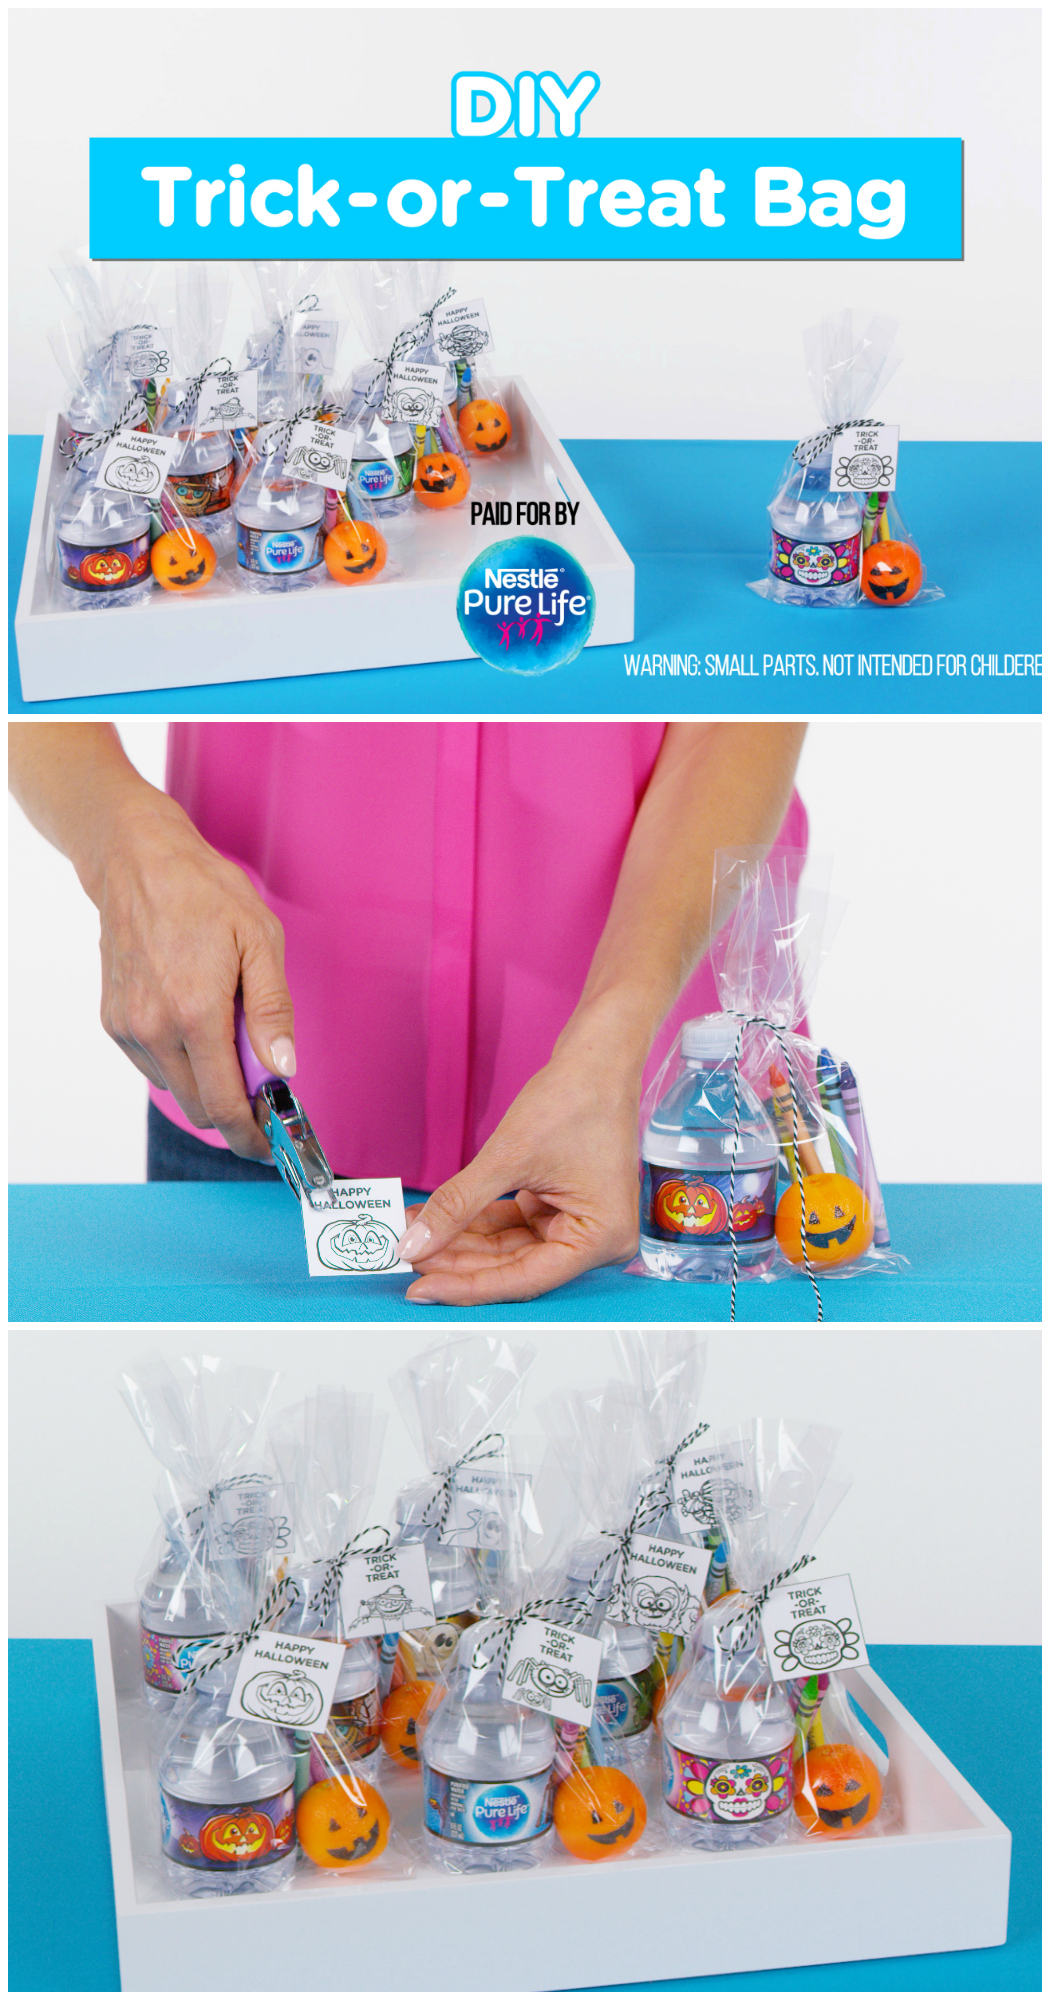 DIY Trick-or-Treat Bags for Halloween